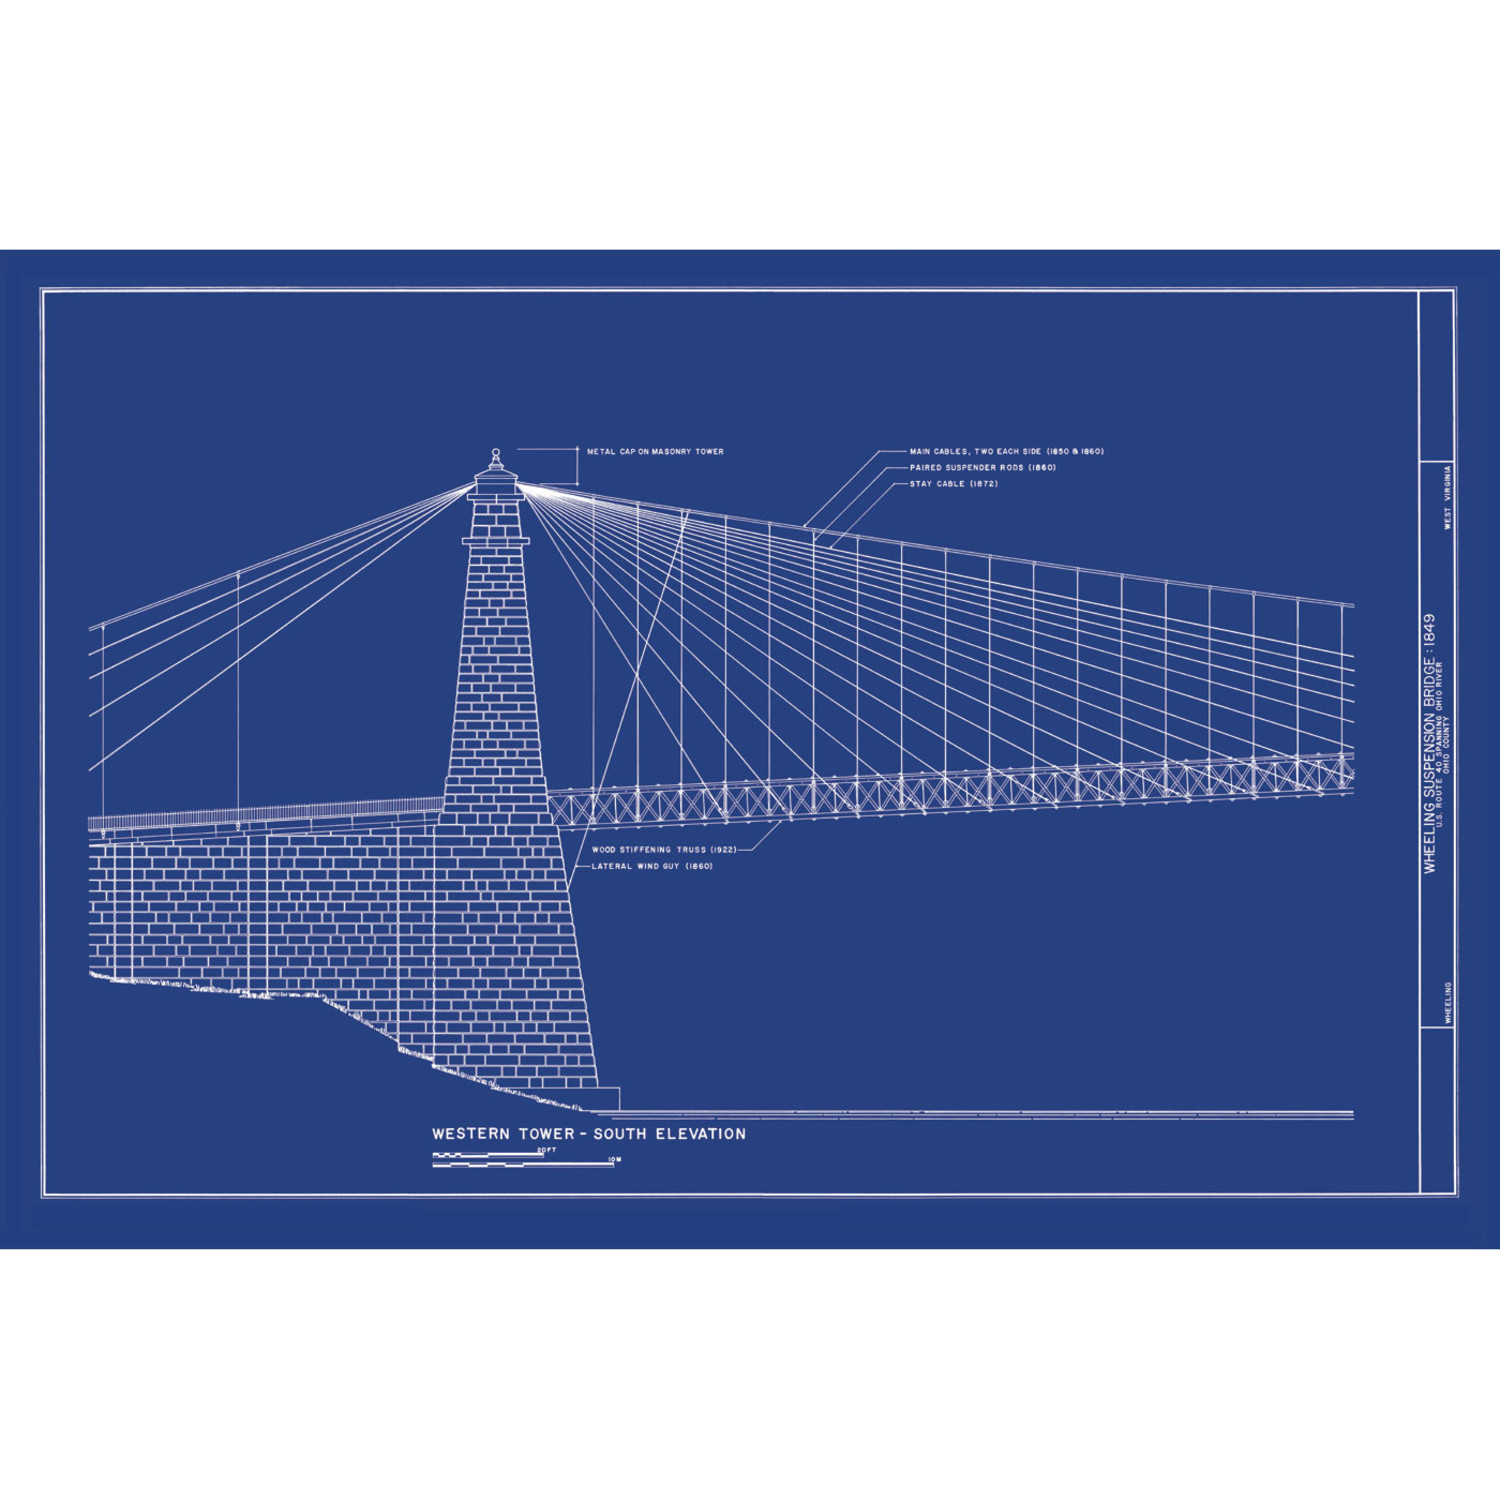 Wheeling West Virginia Suspension Bridge - Old Blueprints - Touch of ...